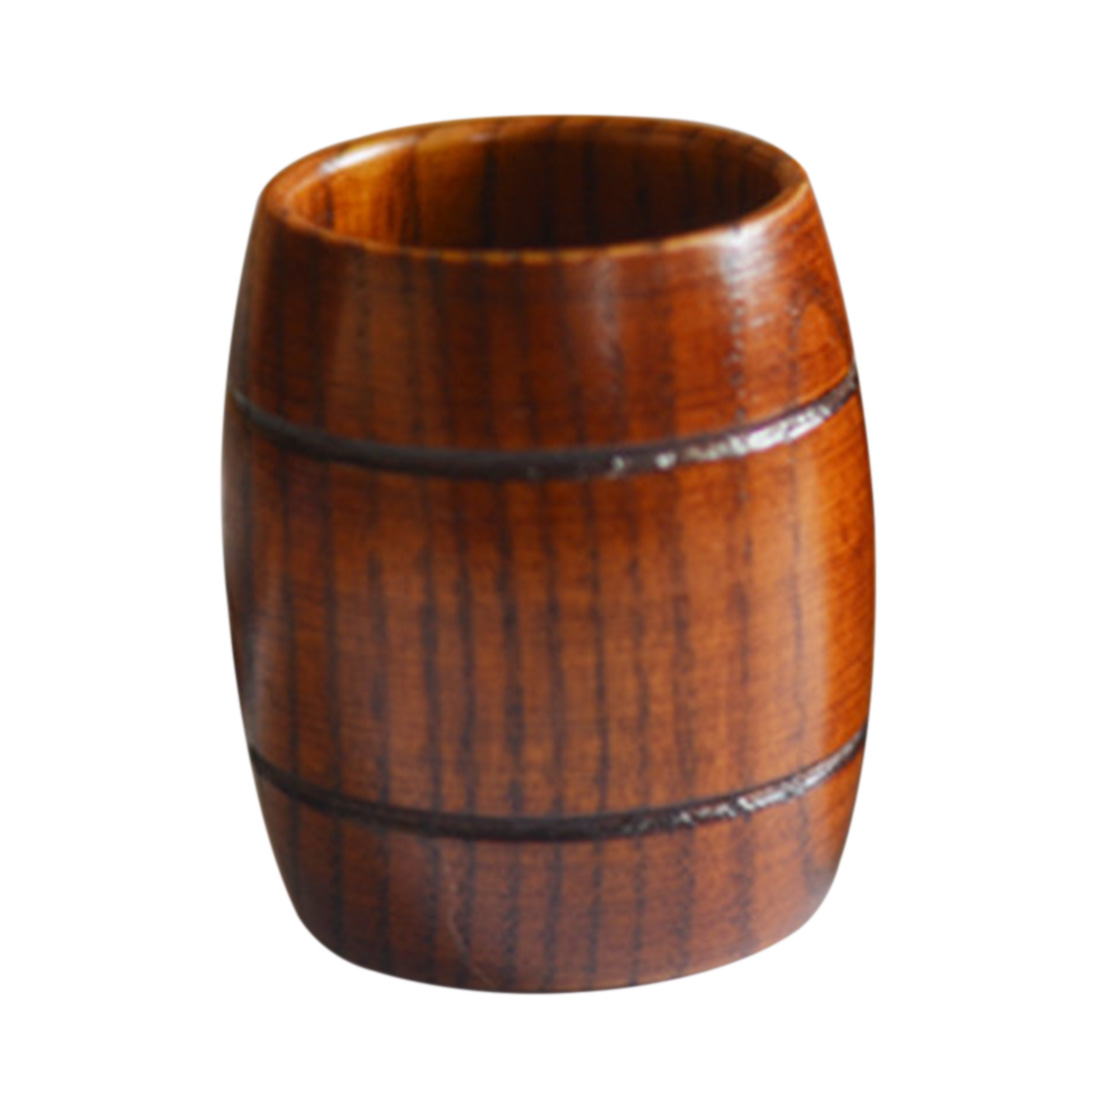 Japanese Wooden Anti-scald Barrel Beer Cup Tea Drinking Cup Drinkware Home Decor